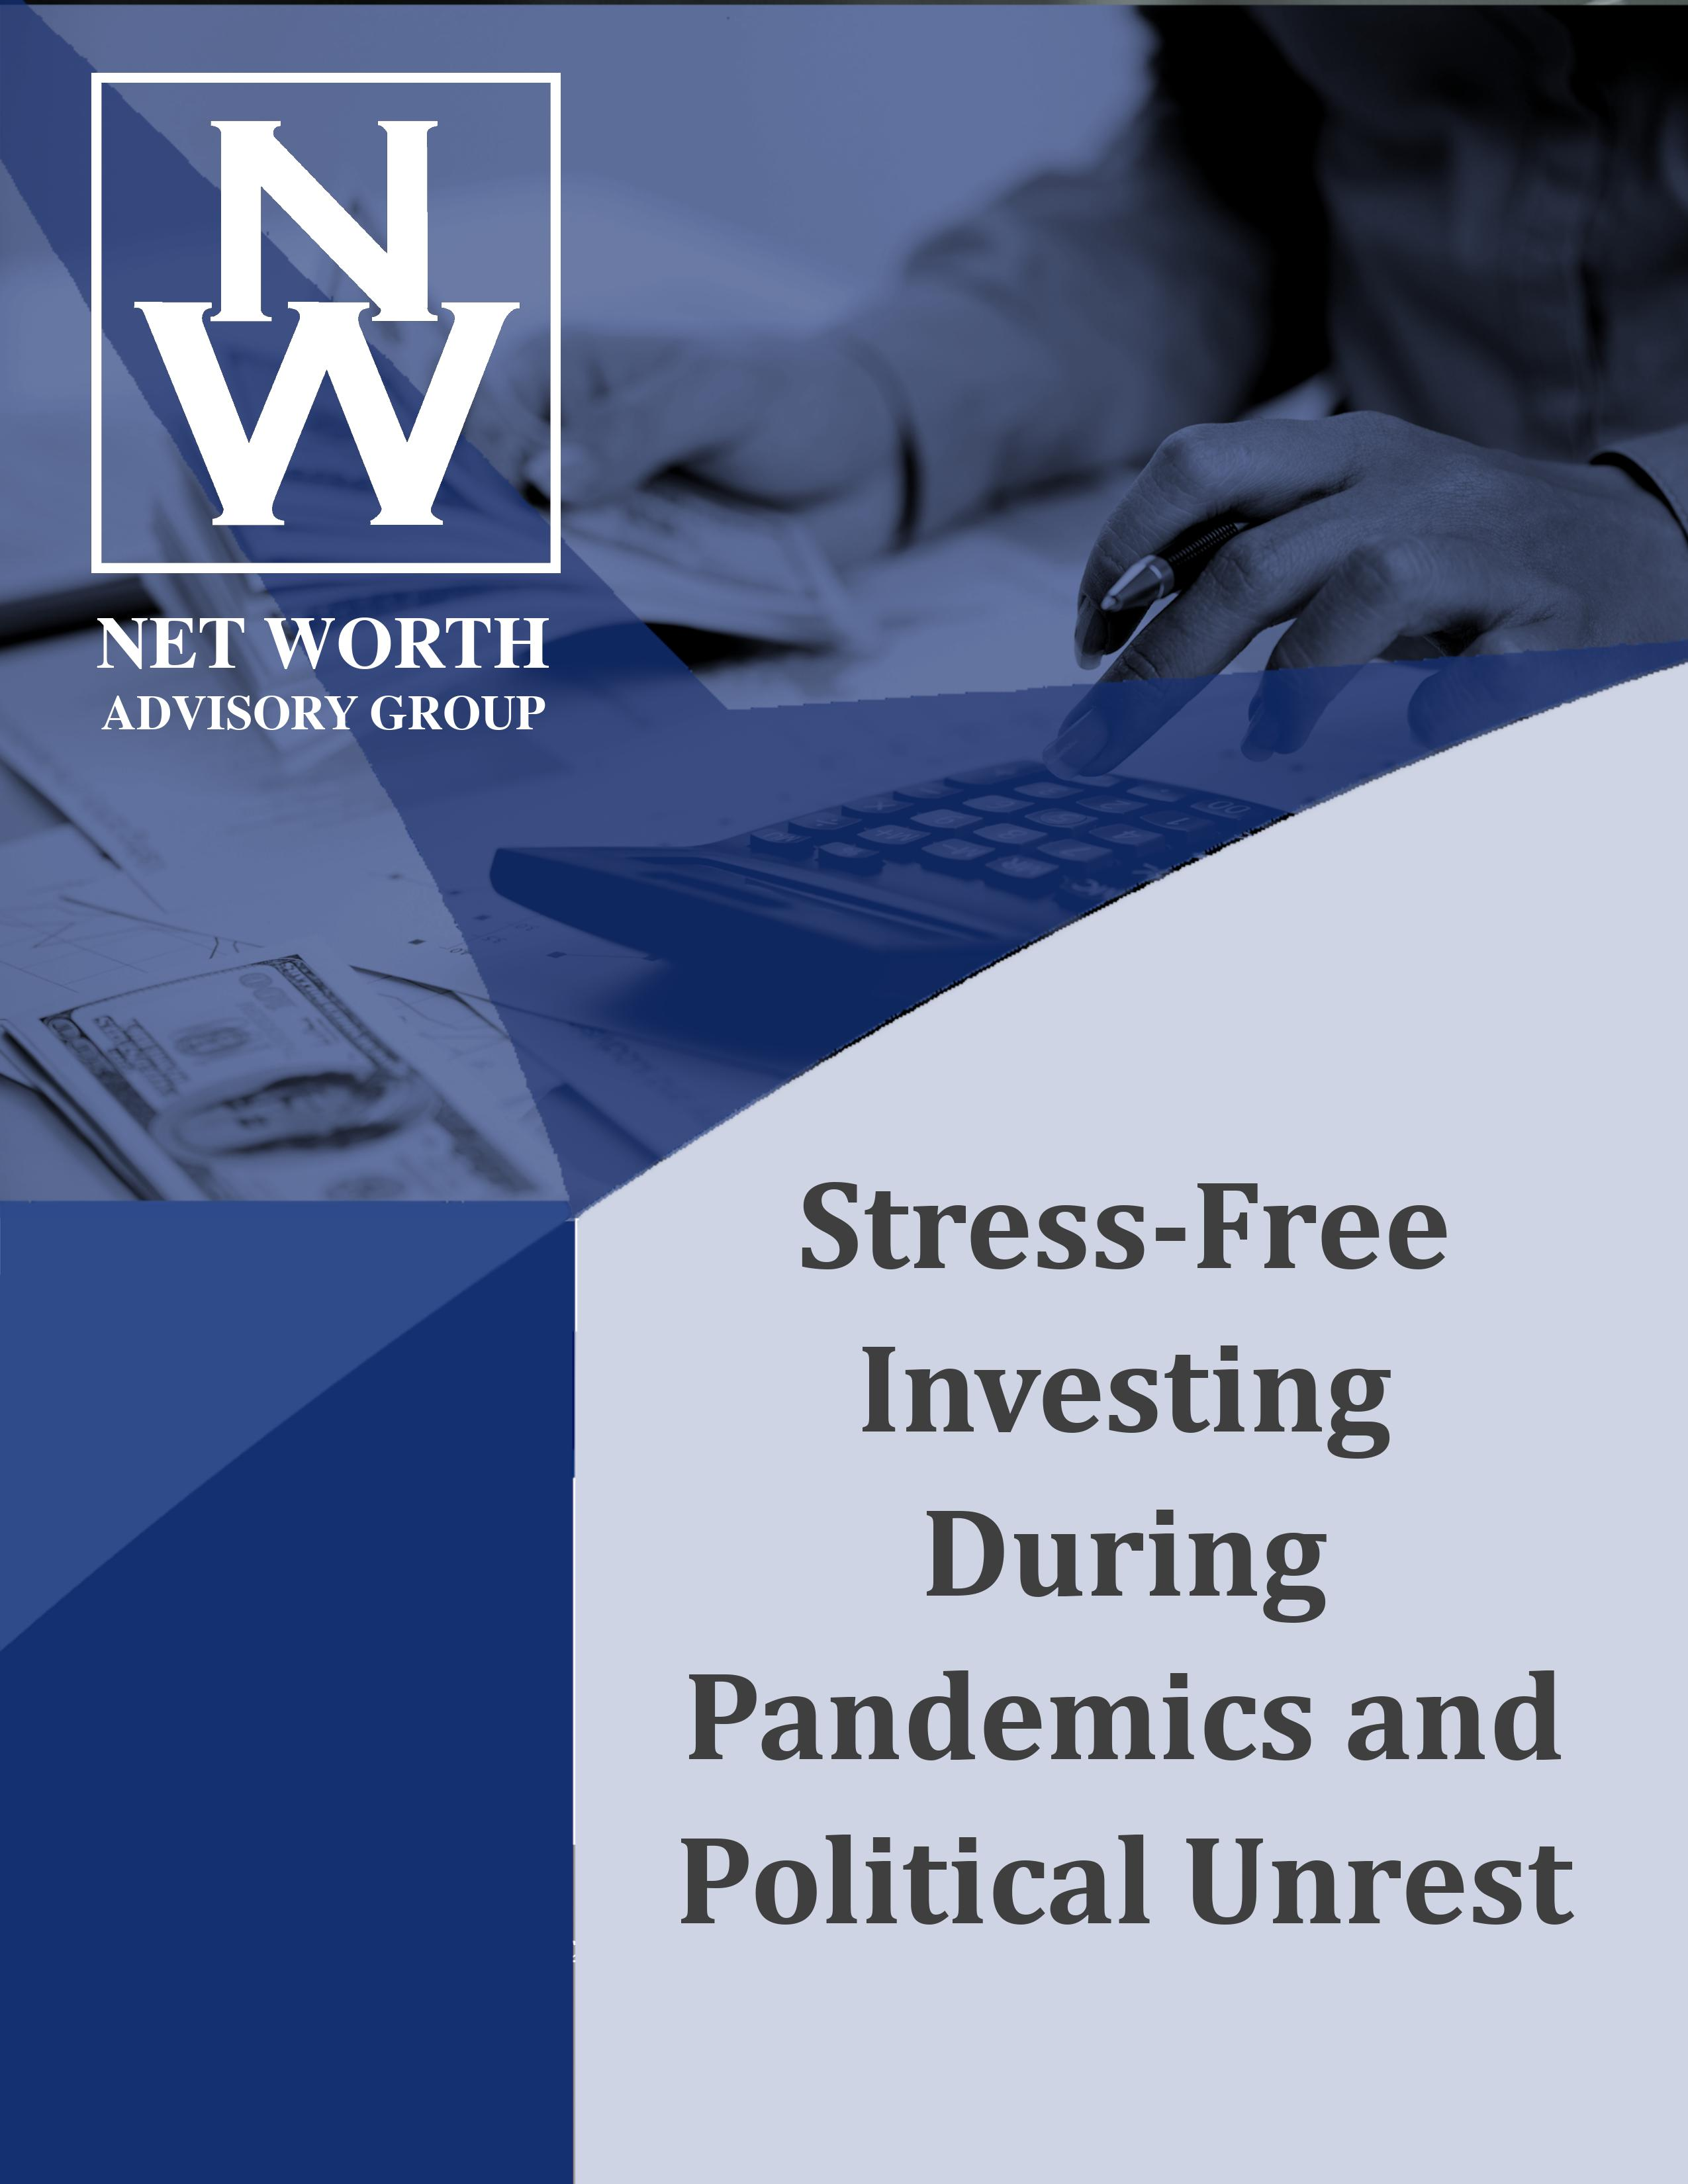 Stress-Free Investing During Pandemics and Political Unrest Net Worth Advisory Group Salt Lake City, UT